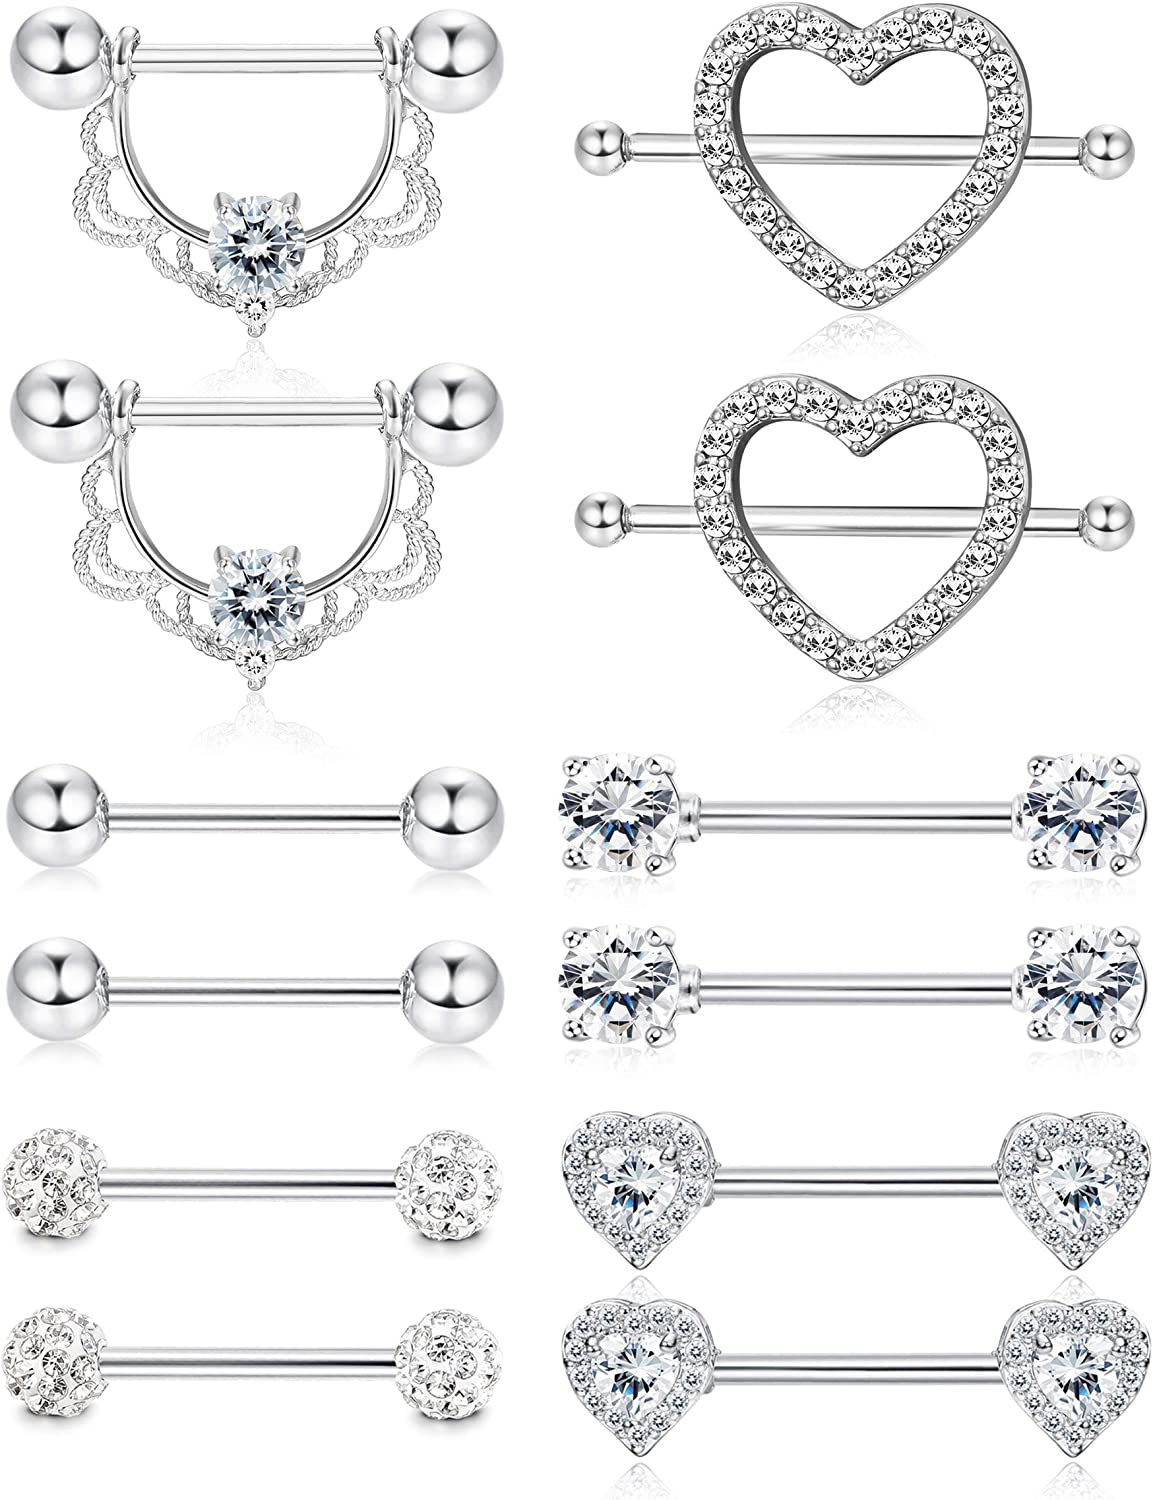 Besteel 6 Pairs 14G 316L Stainless Steel Nipple Rings Tongue Ring CZ Barbell Piercing Heart Shape Body Piercing Jewelry for Women Men